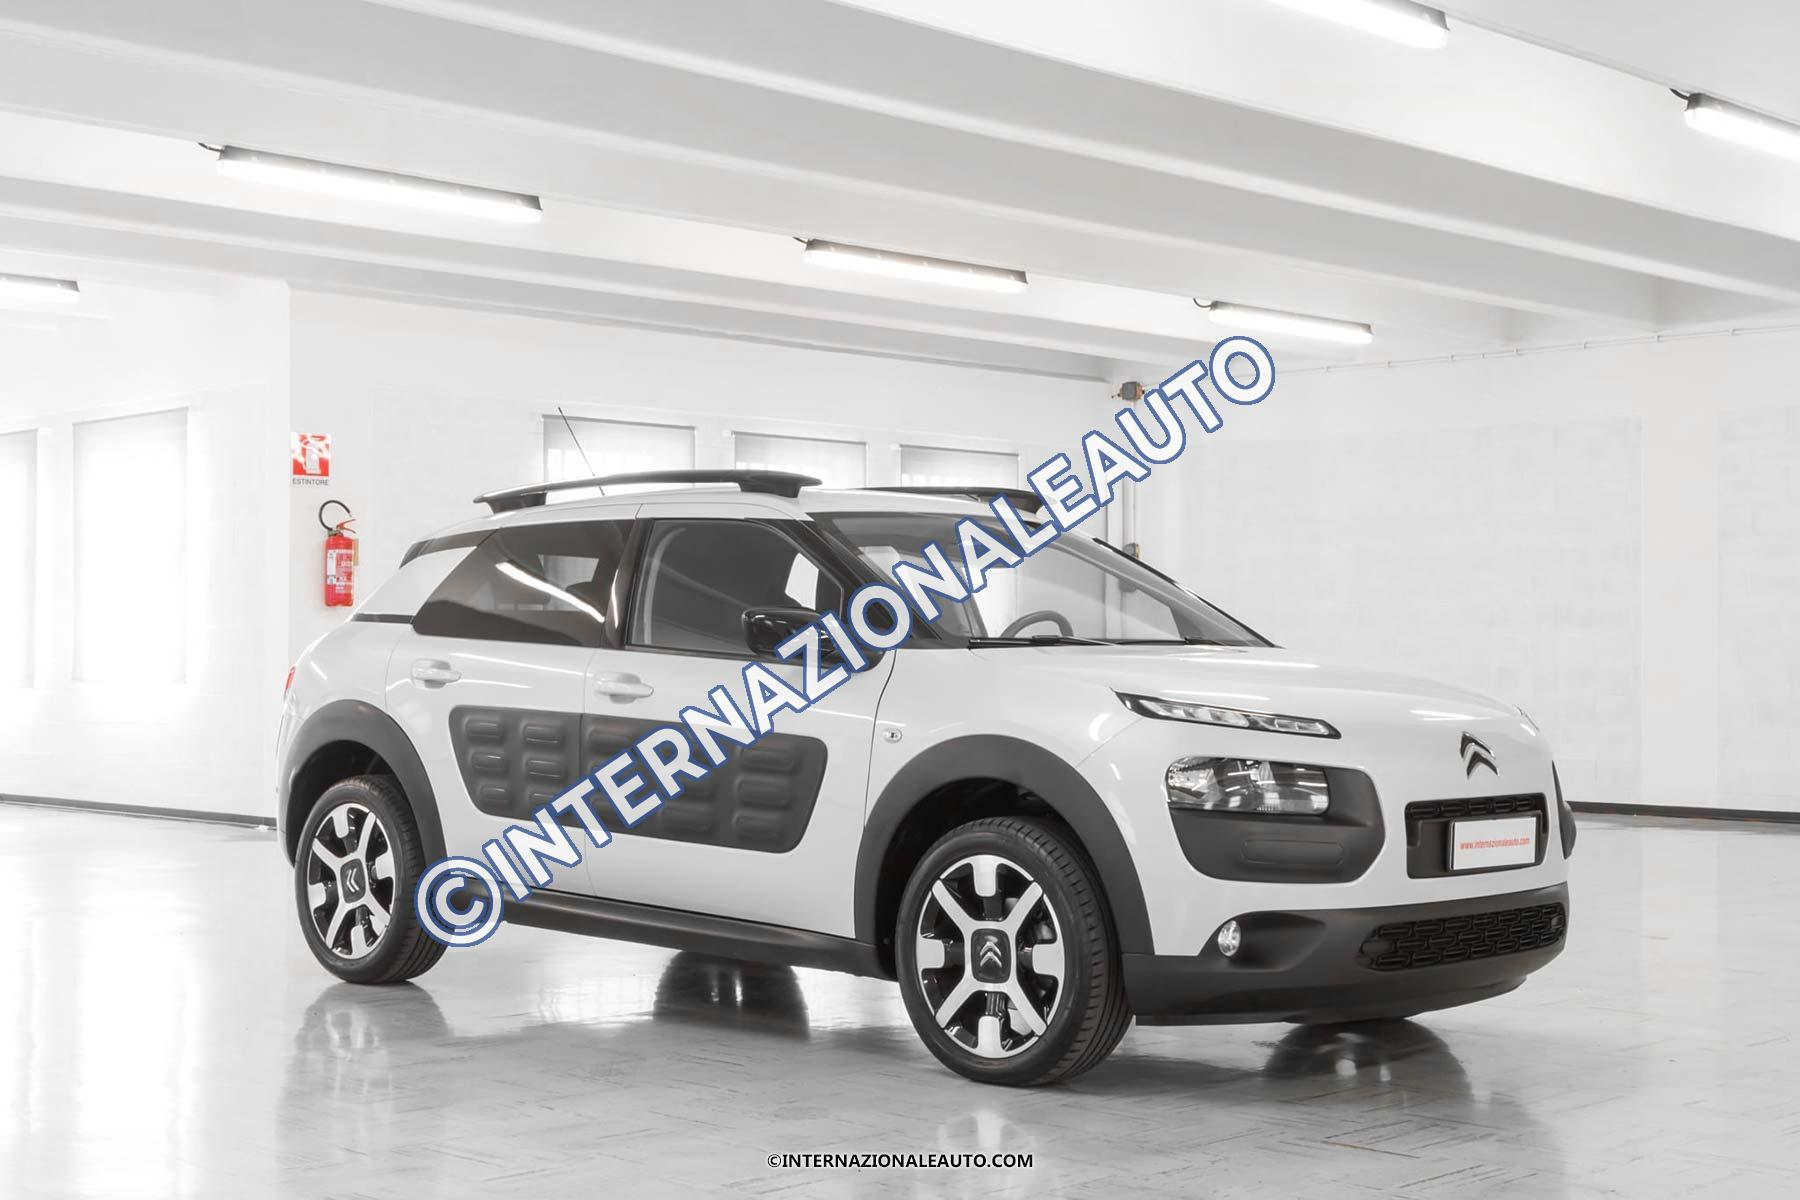 citroen c4 cactus 1 6 bluehdi 100 cv feel edition usata internazionaleauto. Black Bedroom Furniture Sets. Home Design Ideas